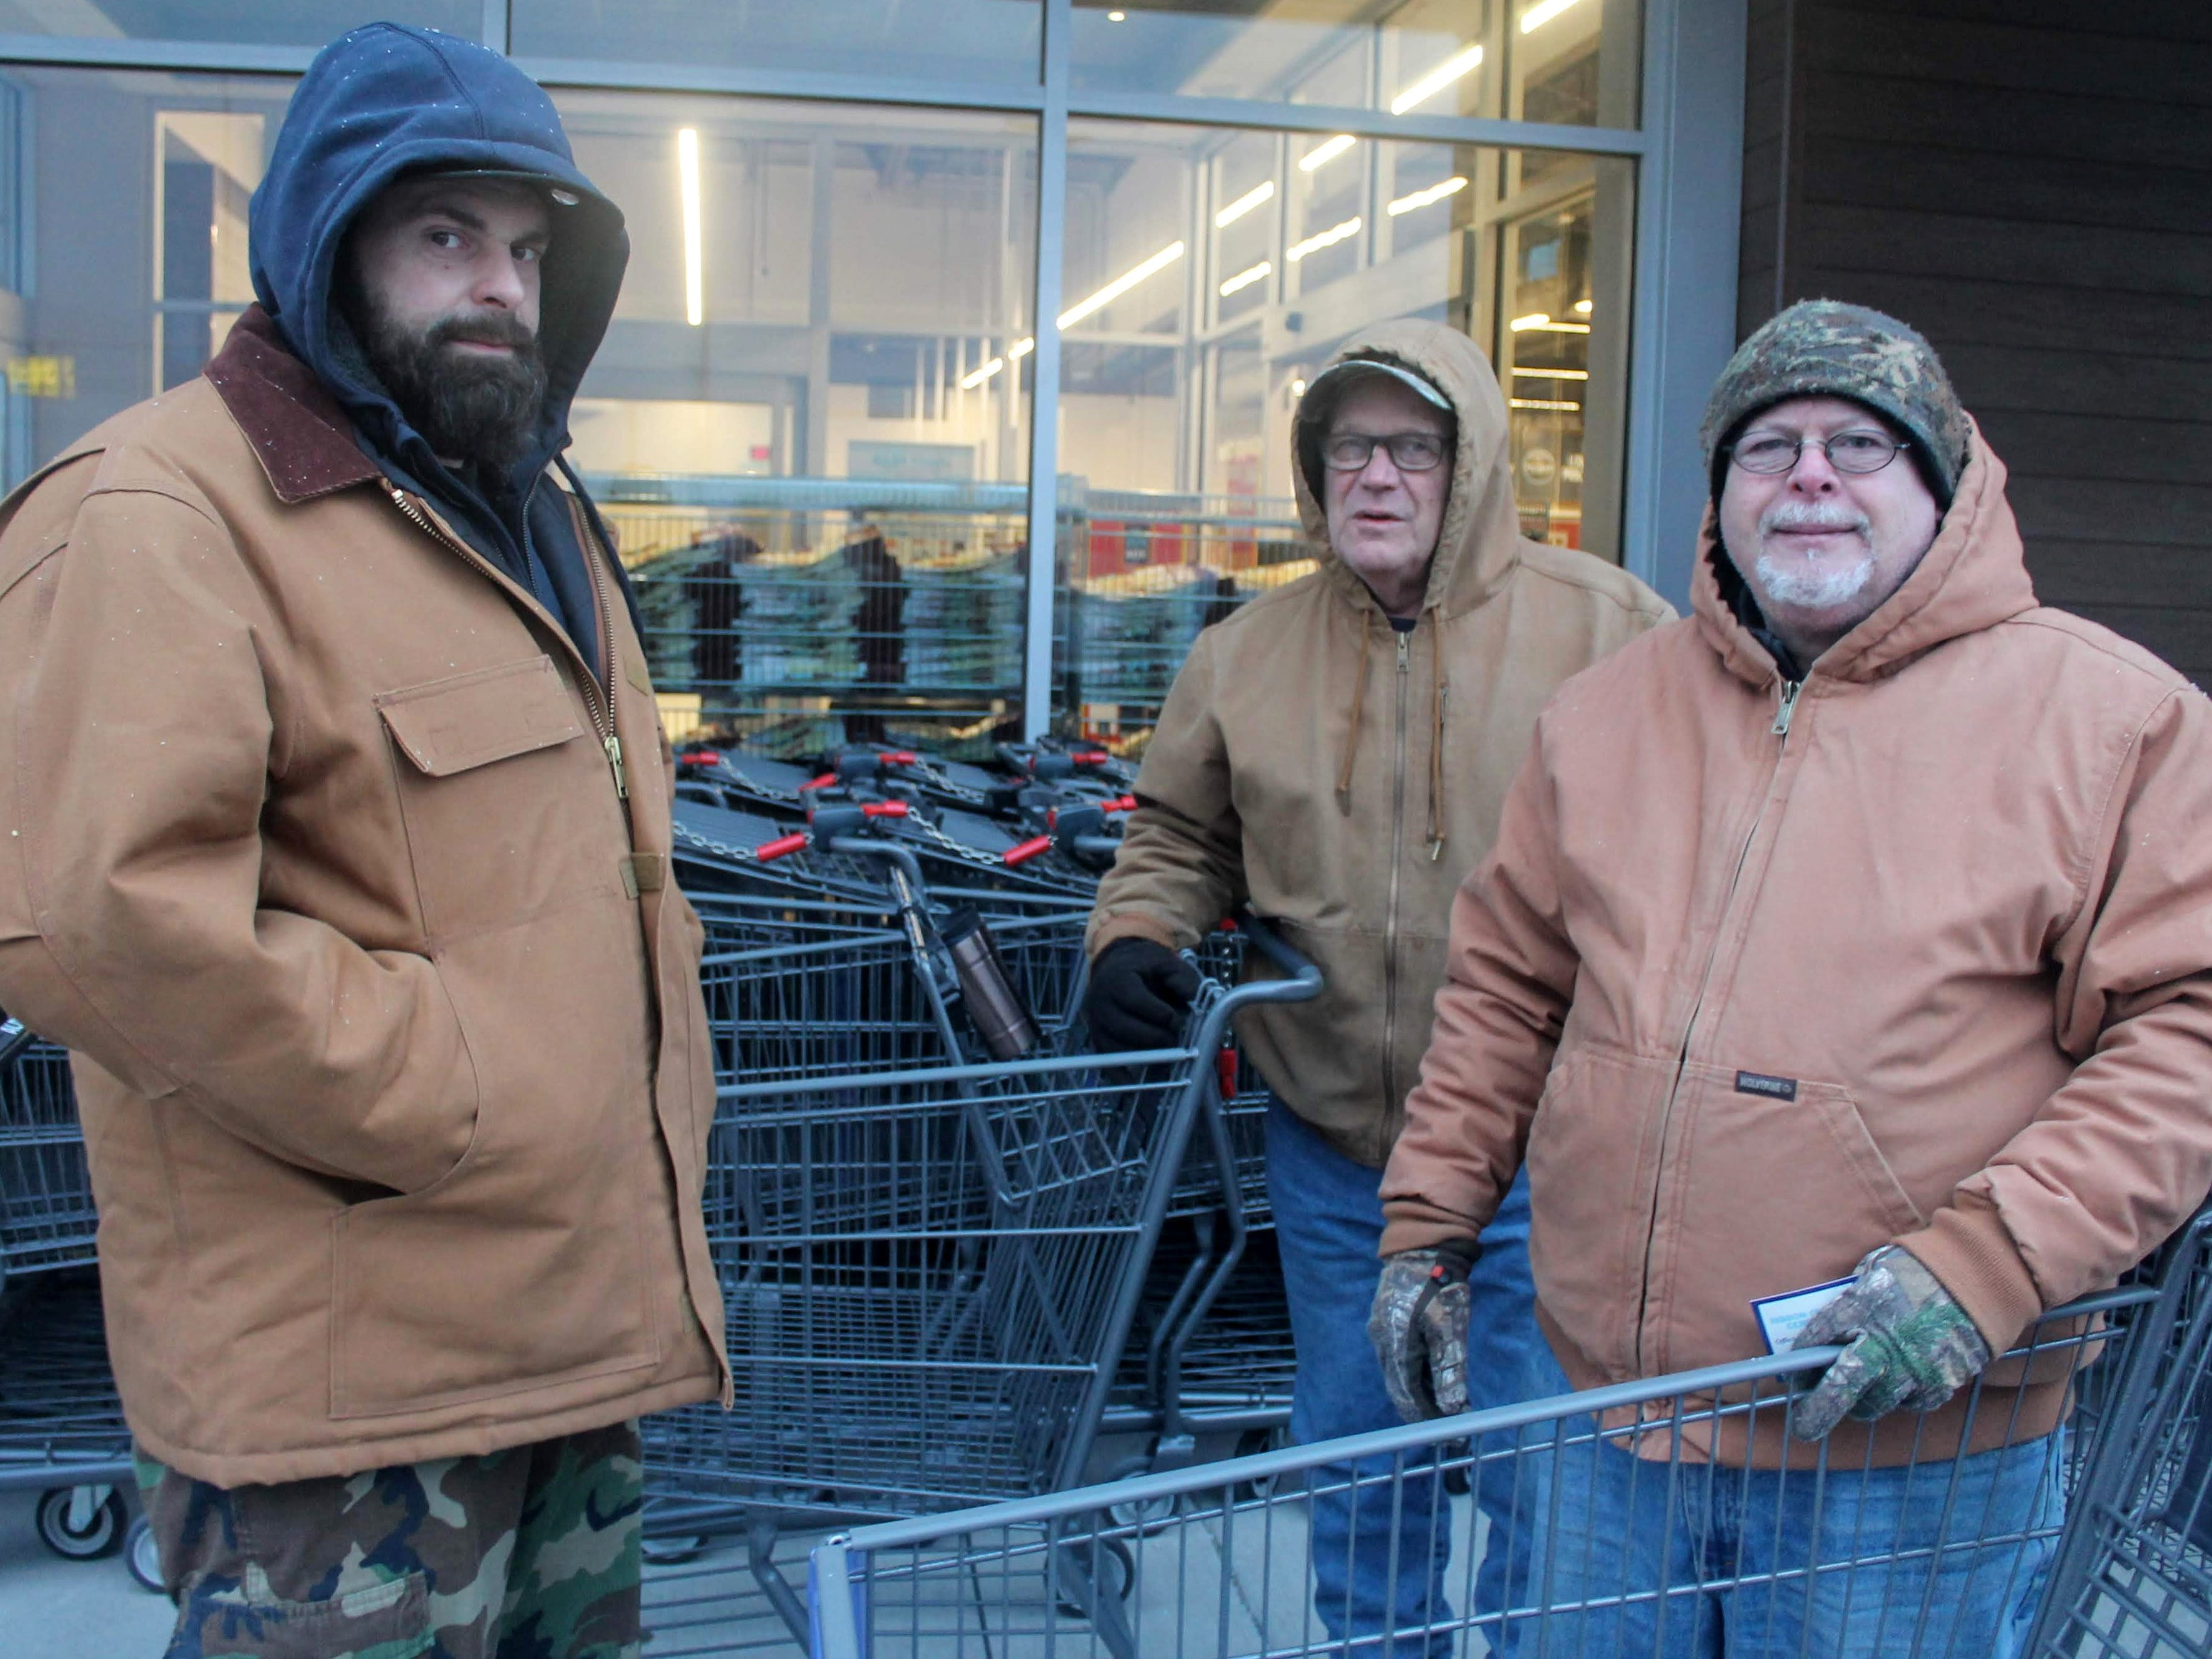 Livonia residents Rob Wagner, left, Jim McAllister, center, and Jim Marable, right, all wait in line to get into the new Aldi grocery store at Schoolcraft and Middlebelt in Livonia.